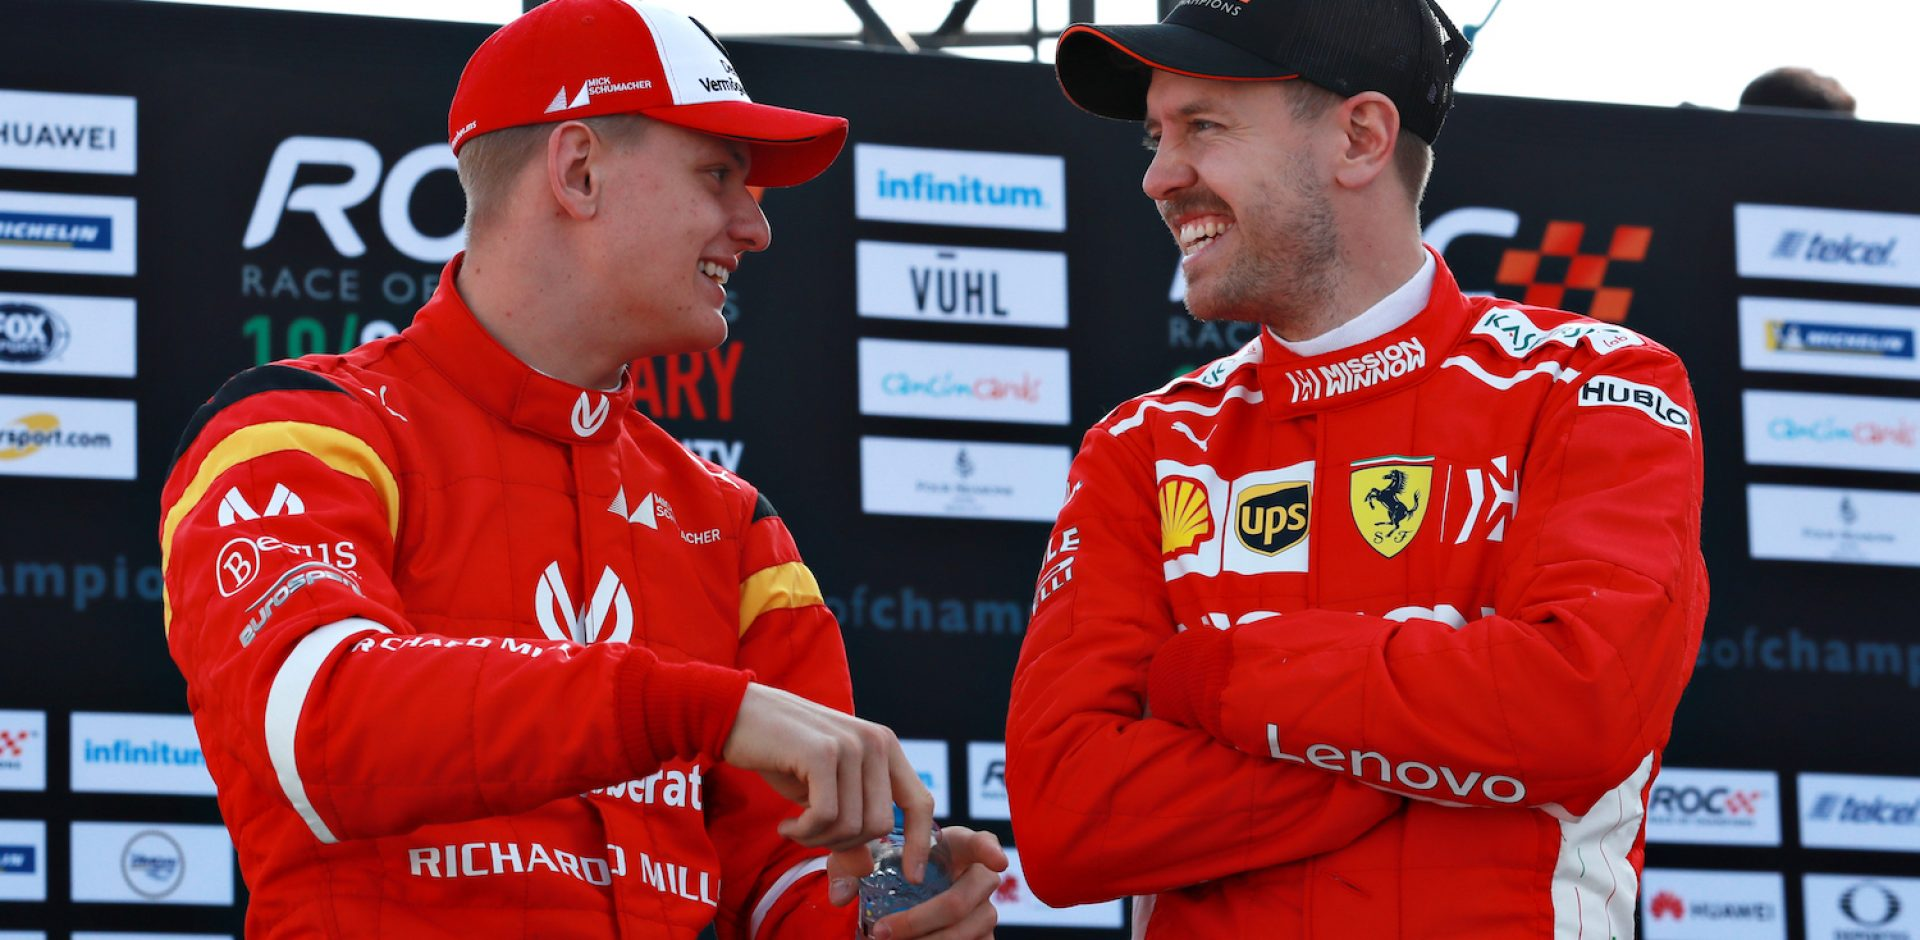 Mick Schumacher (GER) talks with Sebastian Vettel (GER) during the Race of Champions on Sunday 20 January 2019 at Foro Sol, Mexico City, Mexico